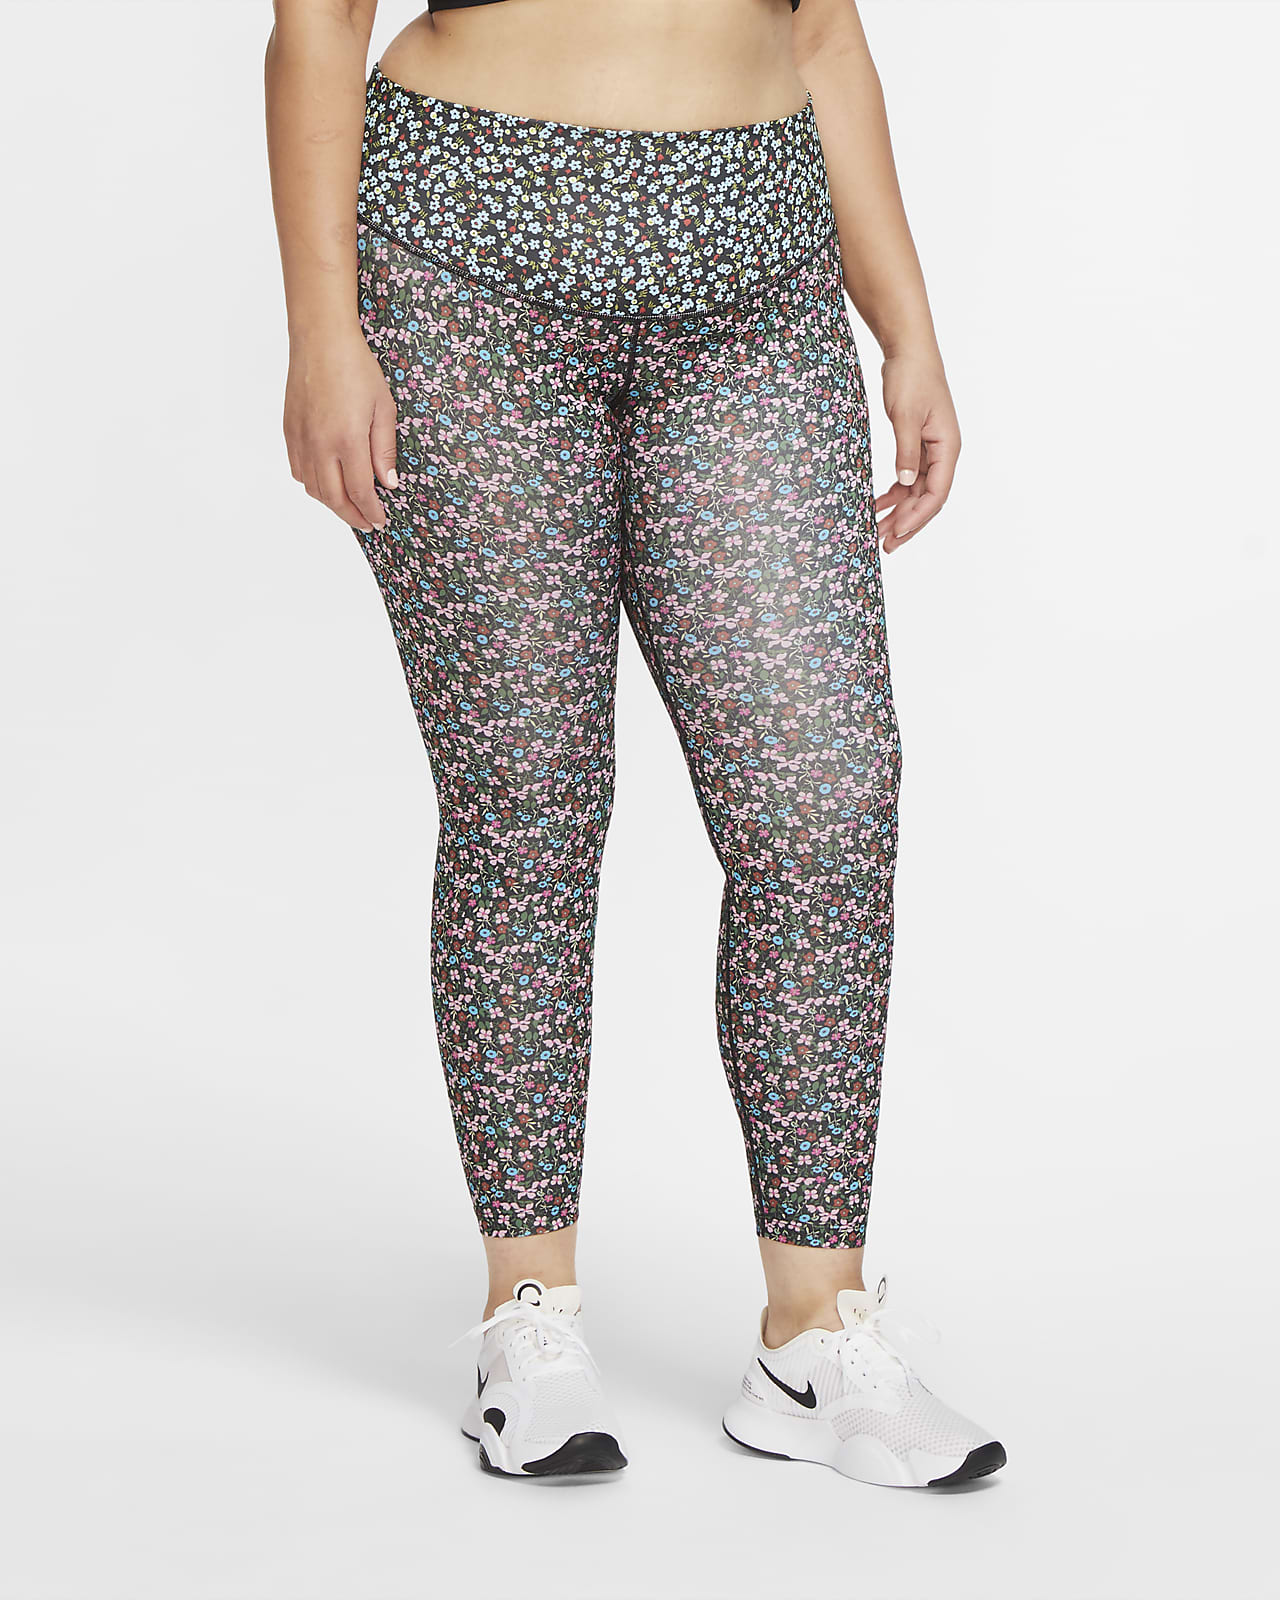 Nike One Women's 7/8 Leggings (Plus size)